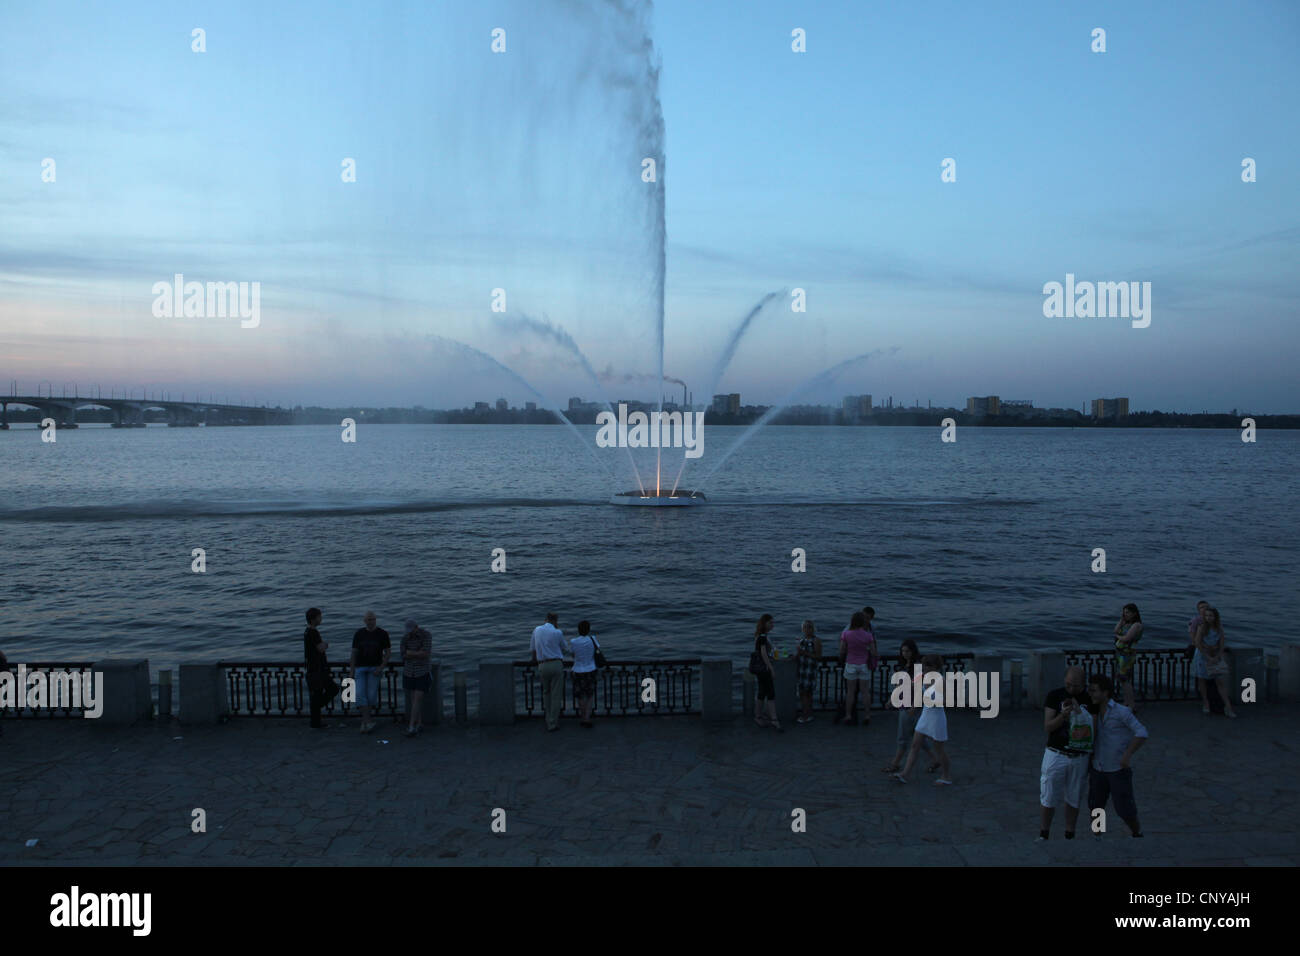 Embankment of the Dnieper River in Dnipro (Dnipropetrovsk), Ukraine. The Petrovsky Metallurgic Plant is seen in - Stock Image